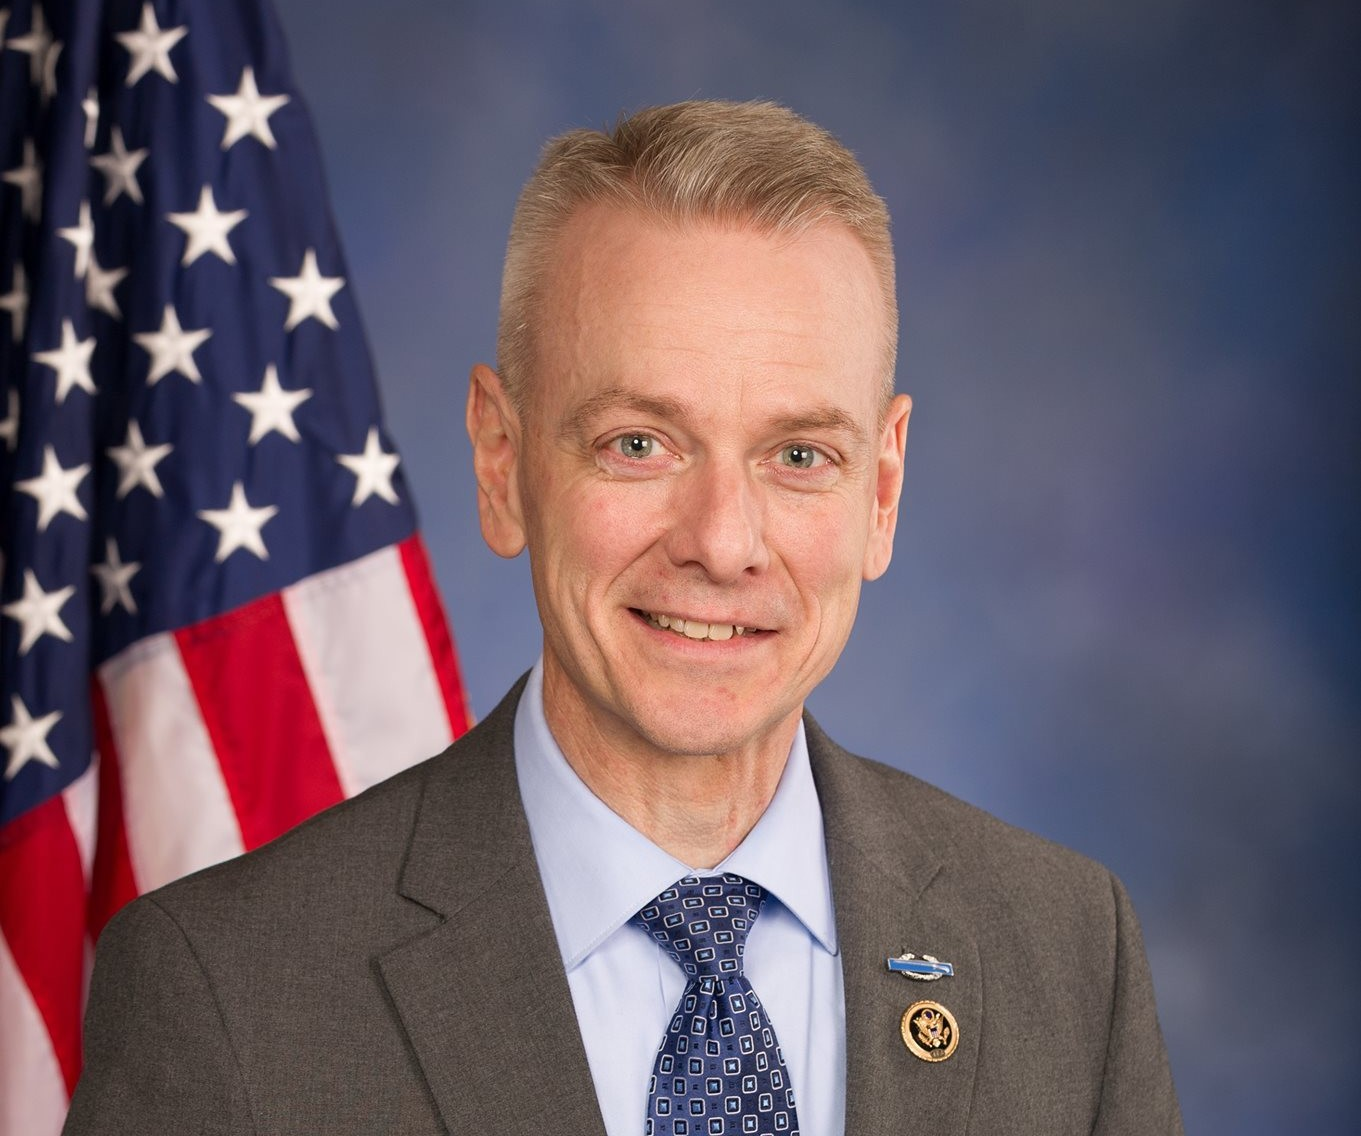 Representative Steve Russell to speak at Commencement